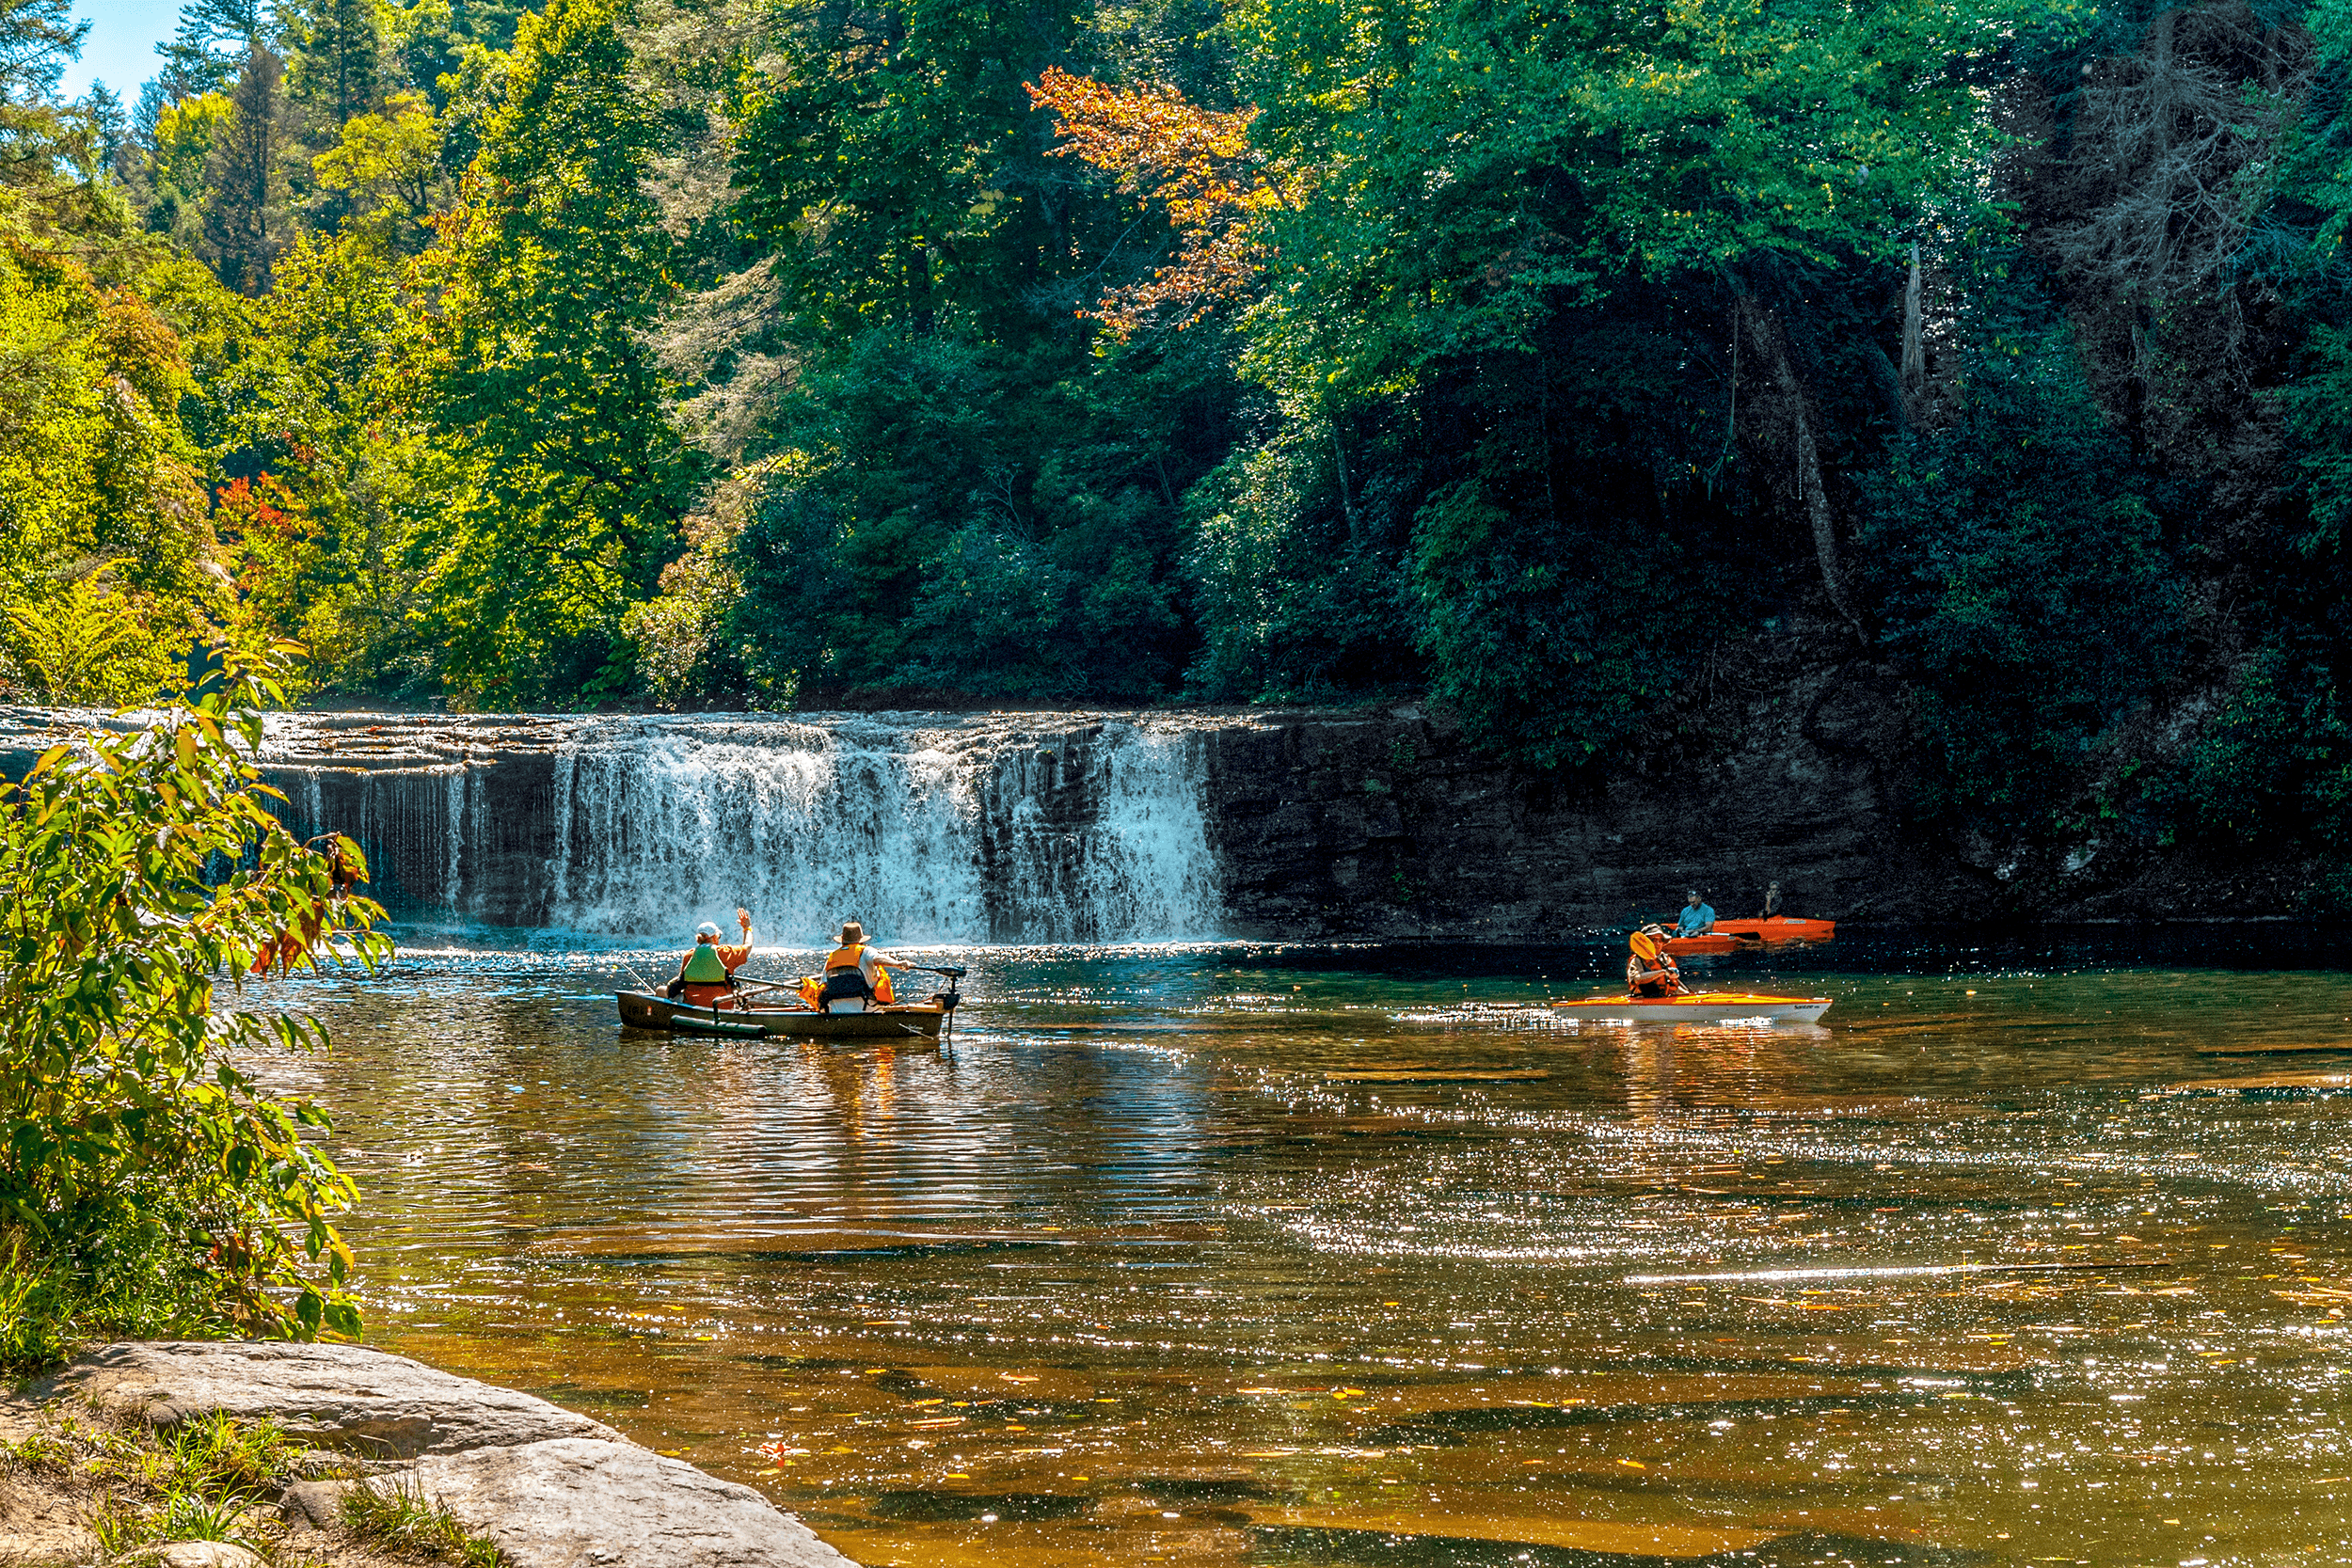 And finally  Hooker Falls , which is only 12 feet high, but a great destination for anglers, swimmers and kayakers. It is also a beautiful location to have a picnic.